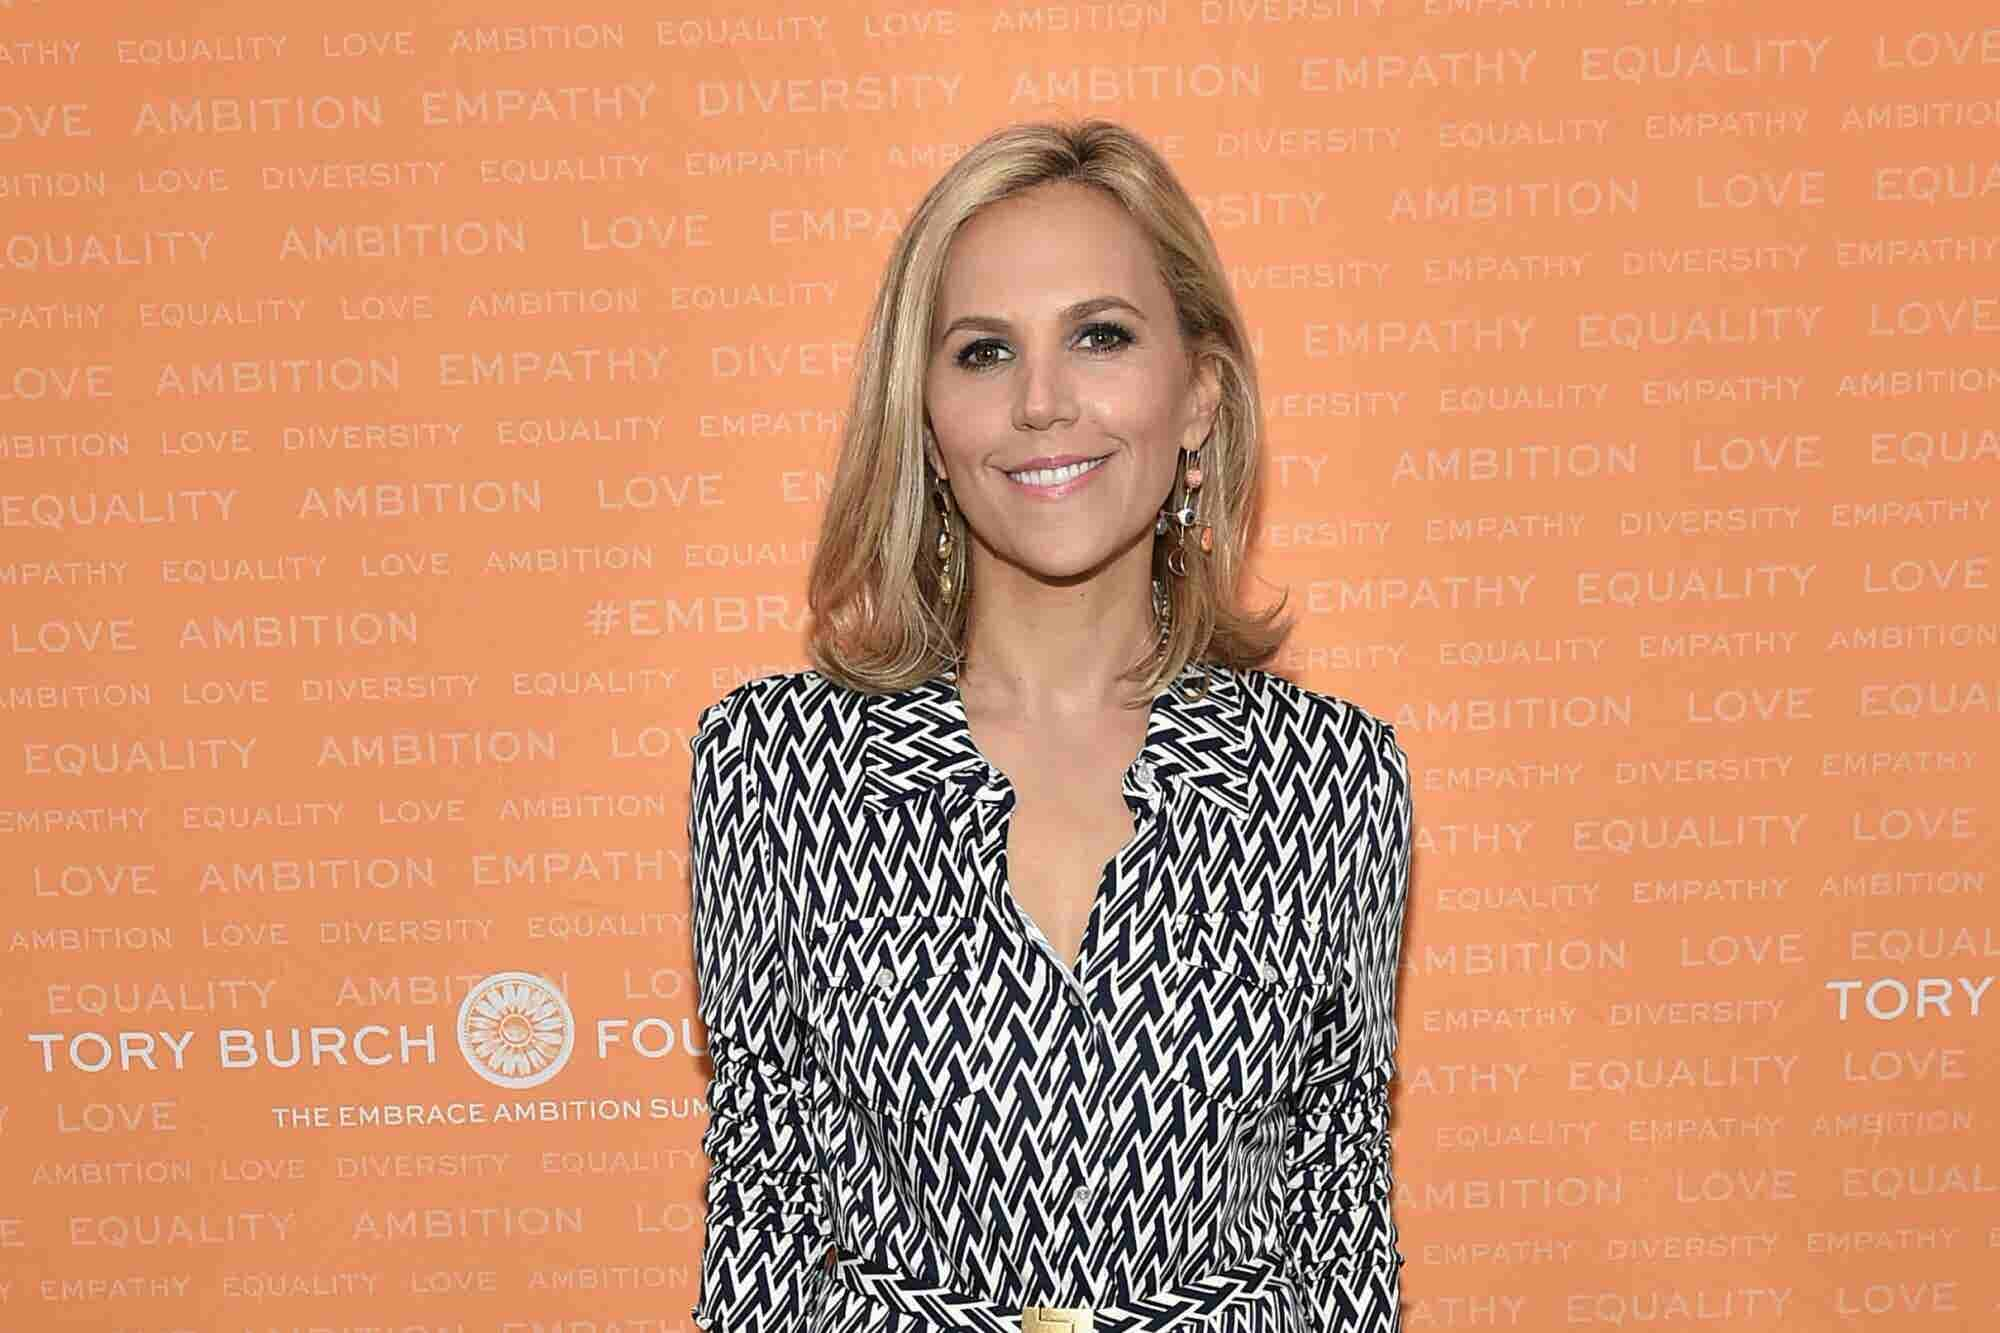 9 Quotes to Inspire You to Dream Big From Millionaire Fashion Entrepreneur Tory Burch